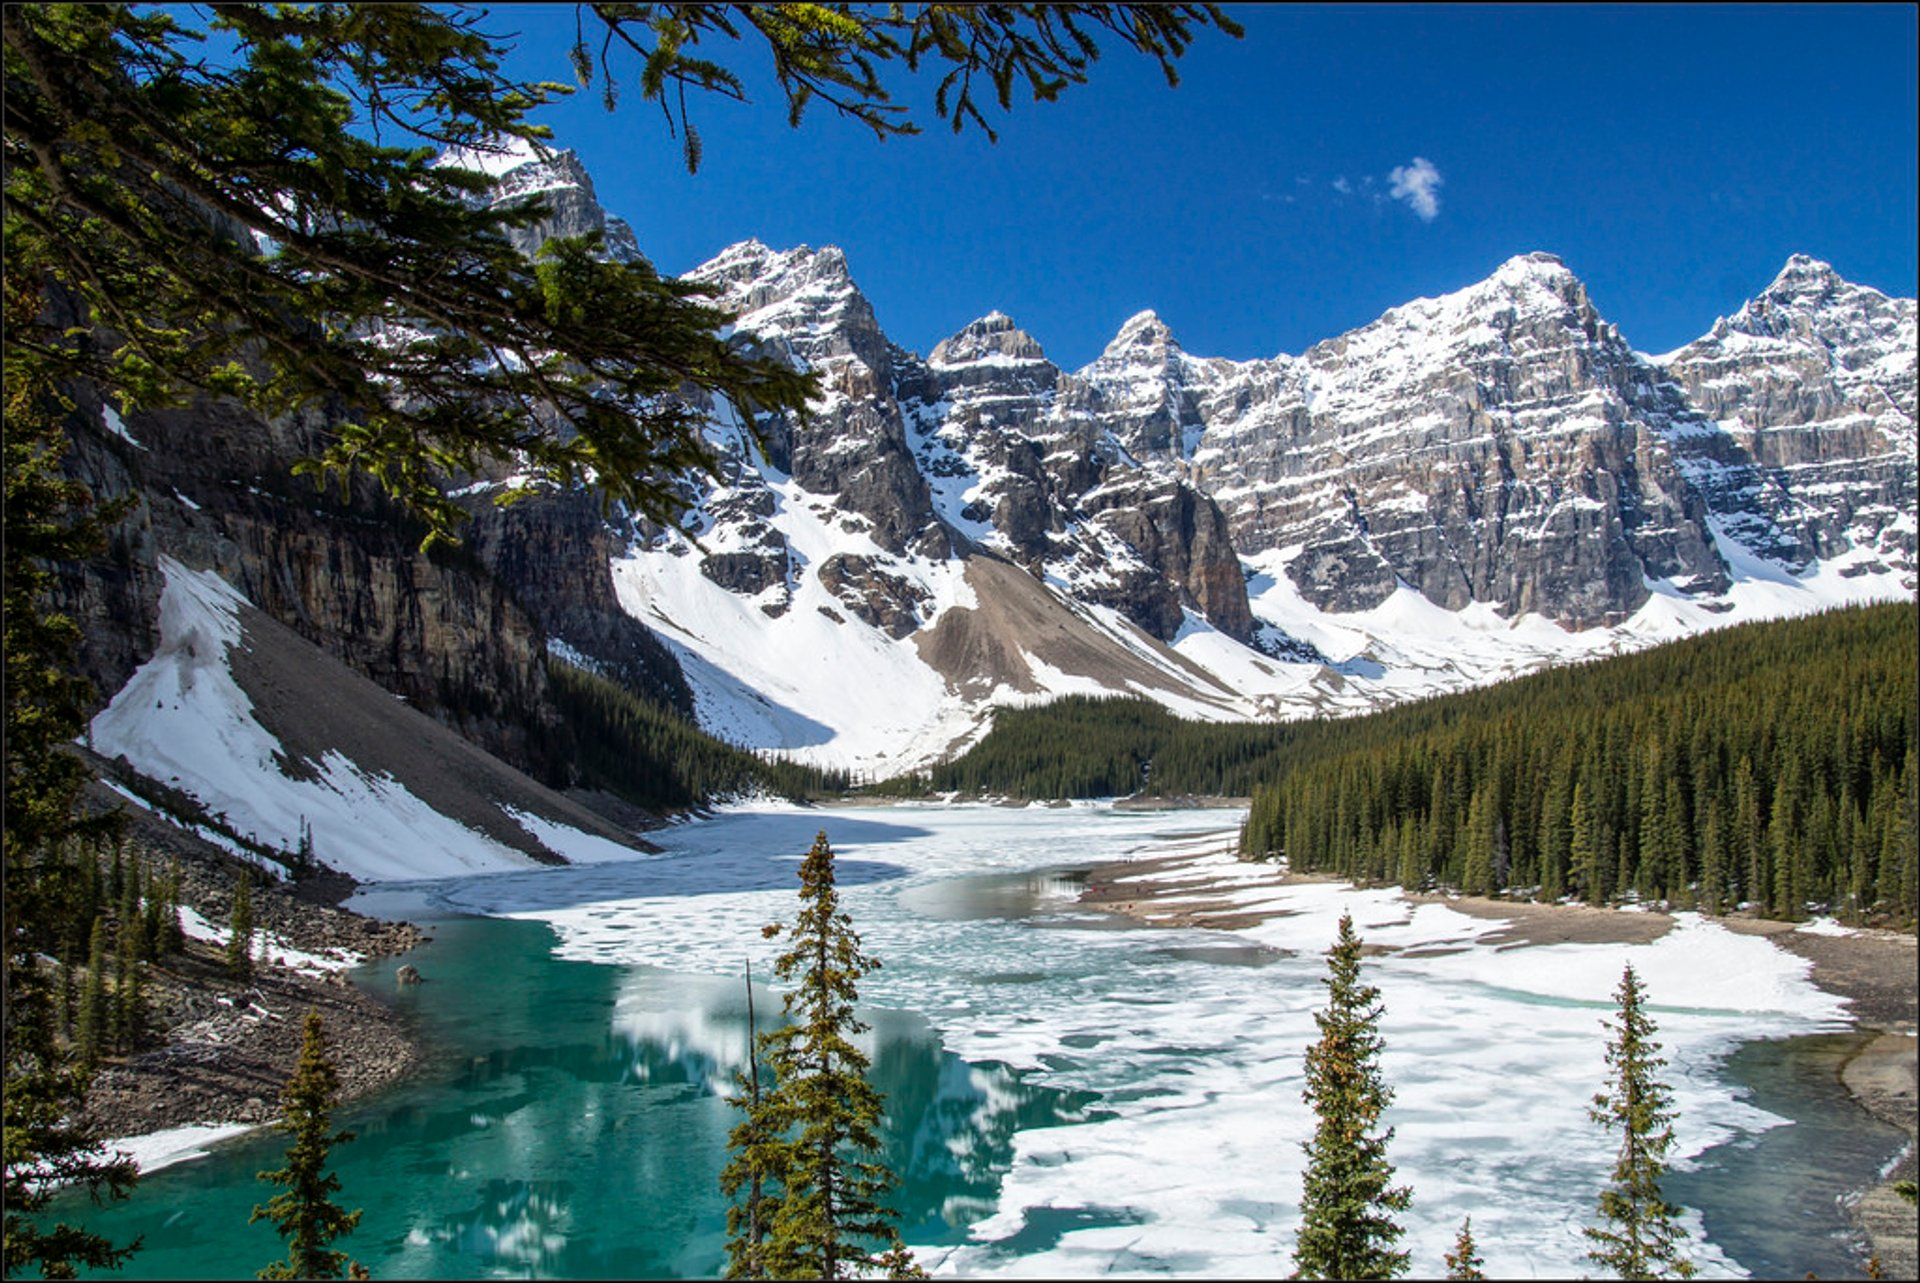 Best time to see Moraine Lake in Banff & Jasper National Parks 2020